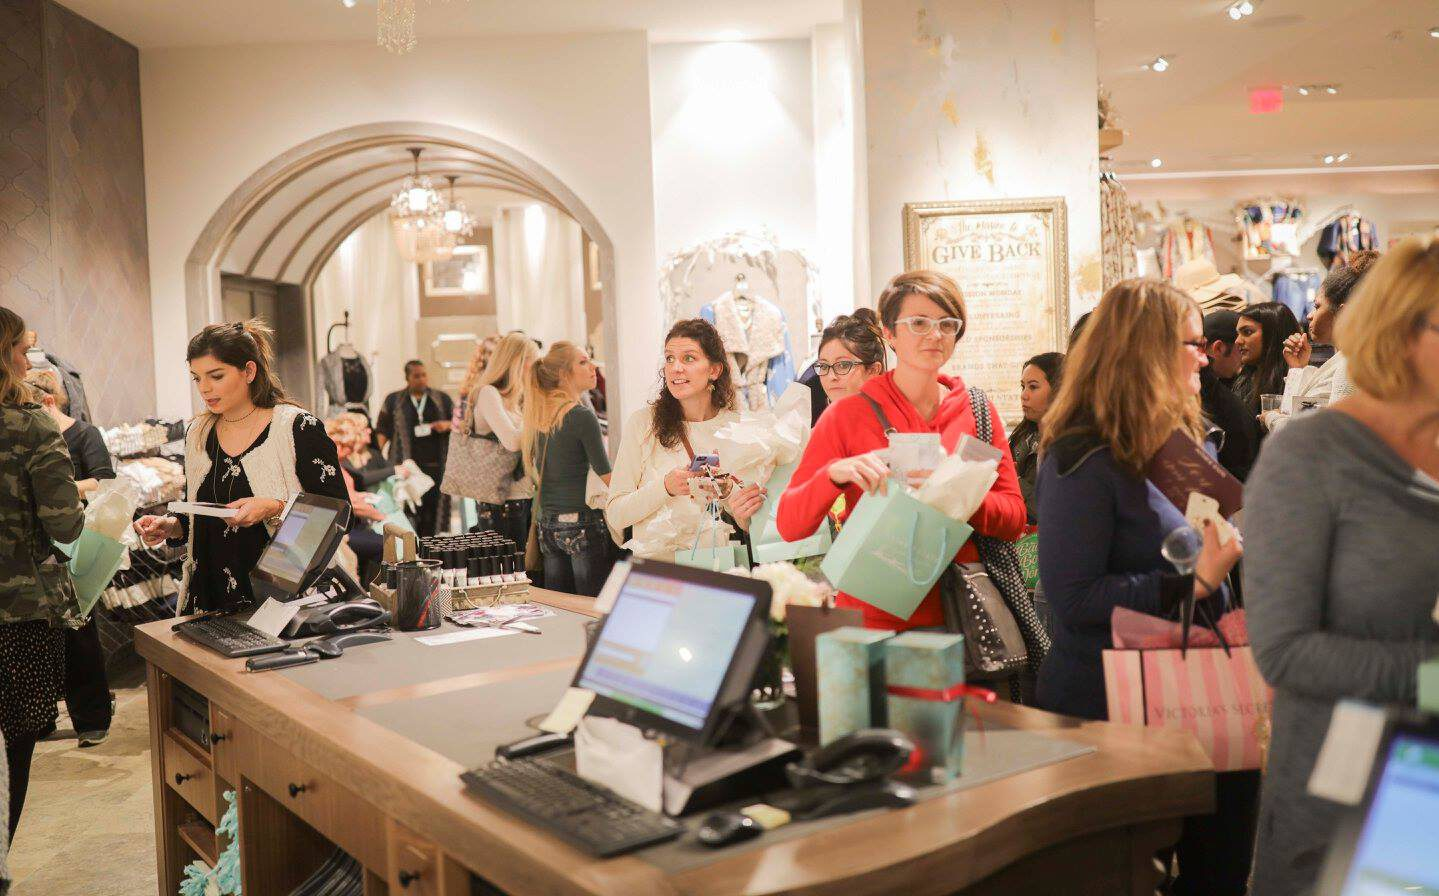 Altar'd State will full house of customers